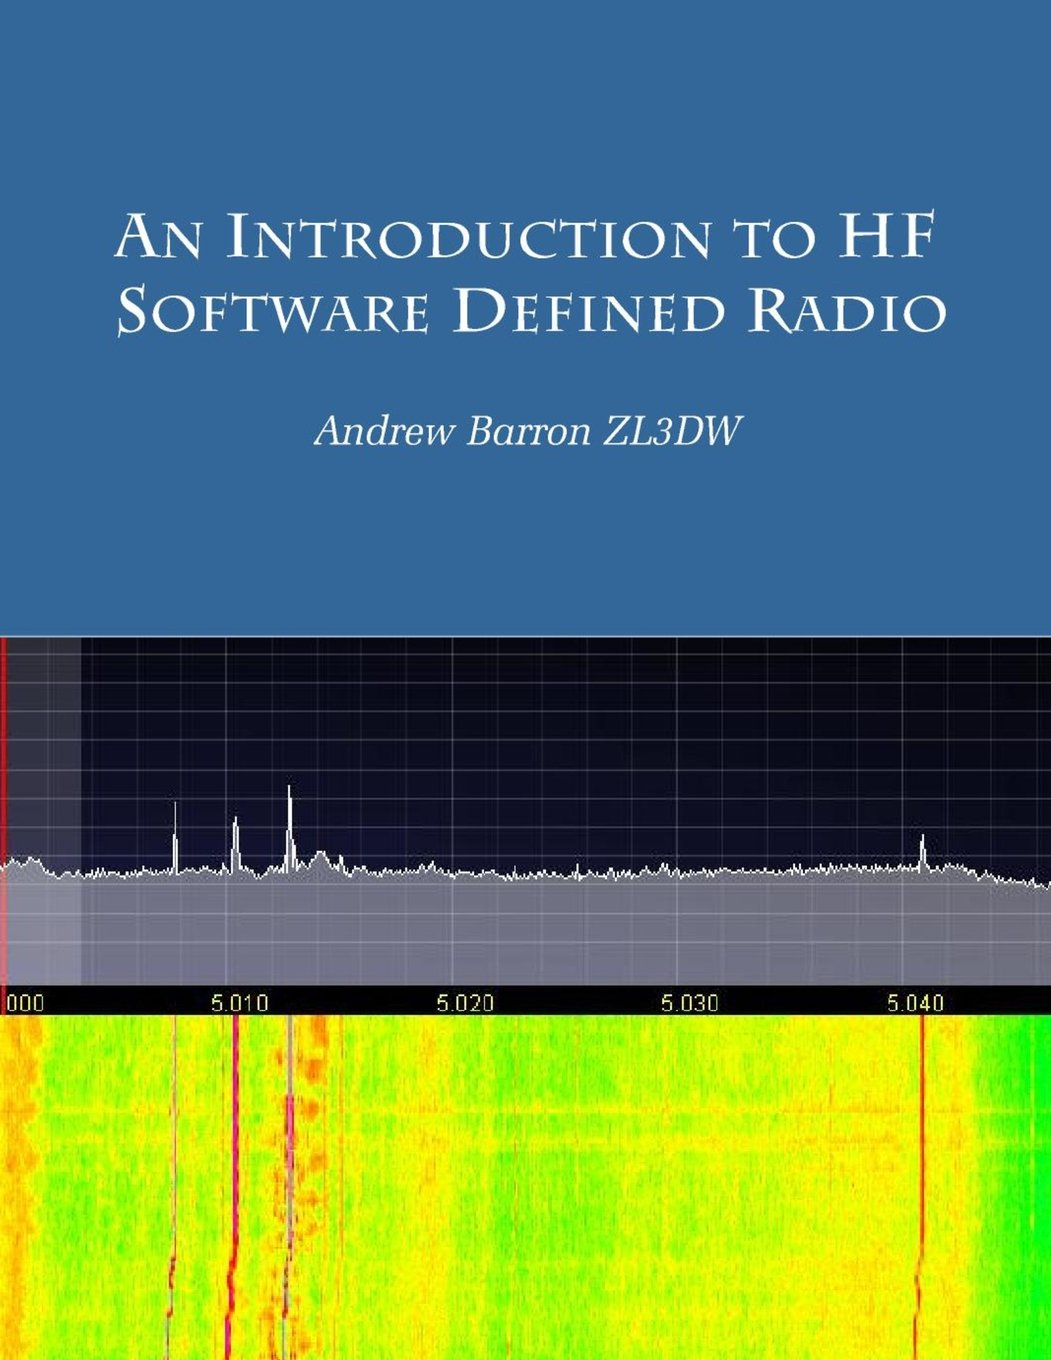 An introduction to HF Software Defined Radio: SDR for Amateur Radio Operators